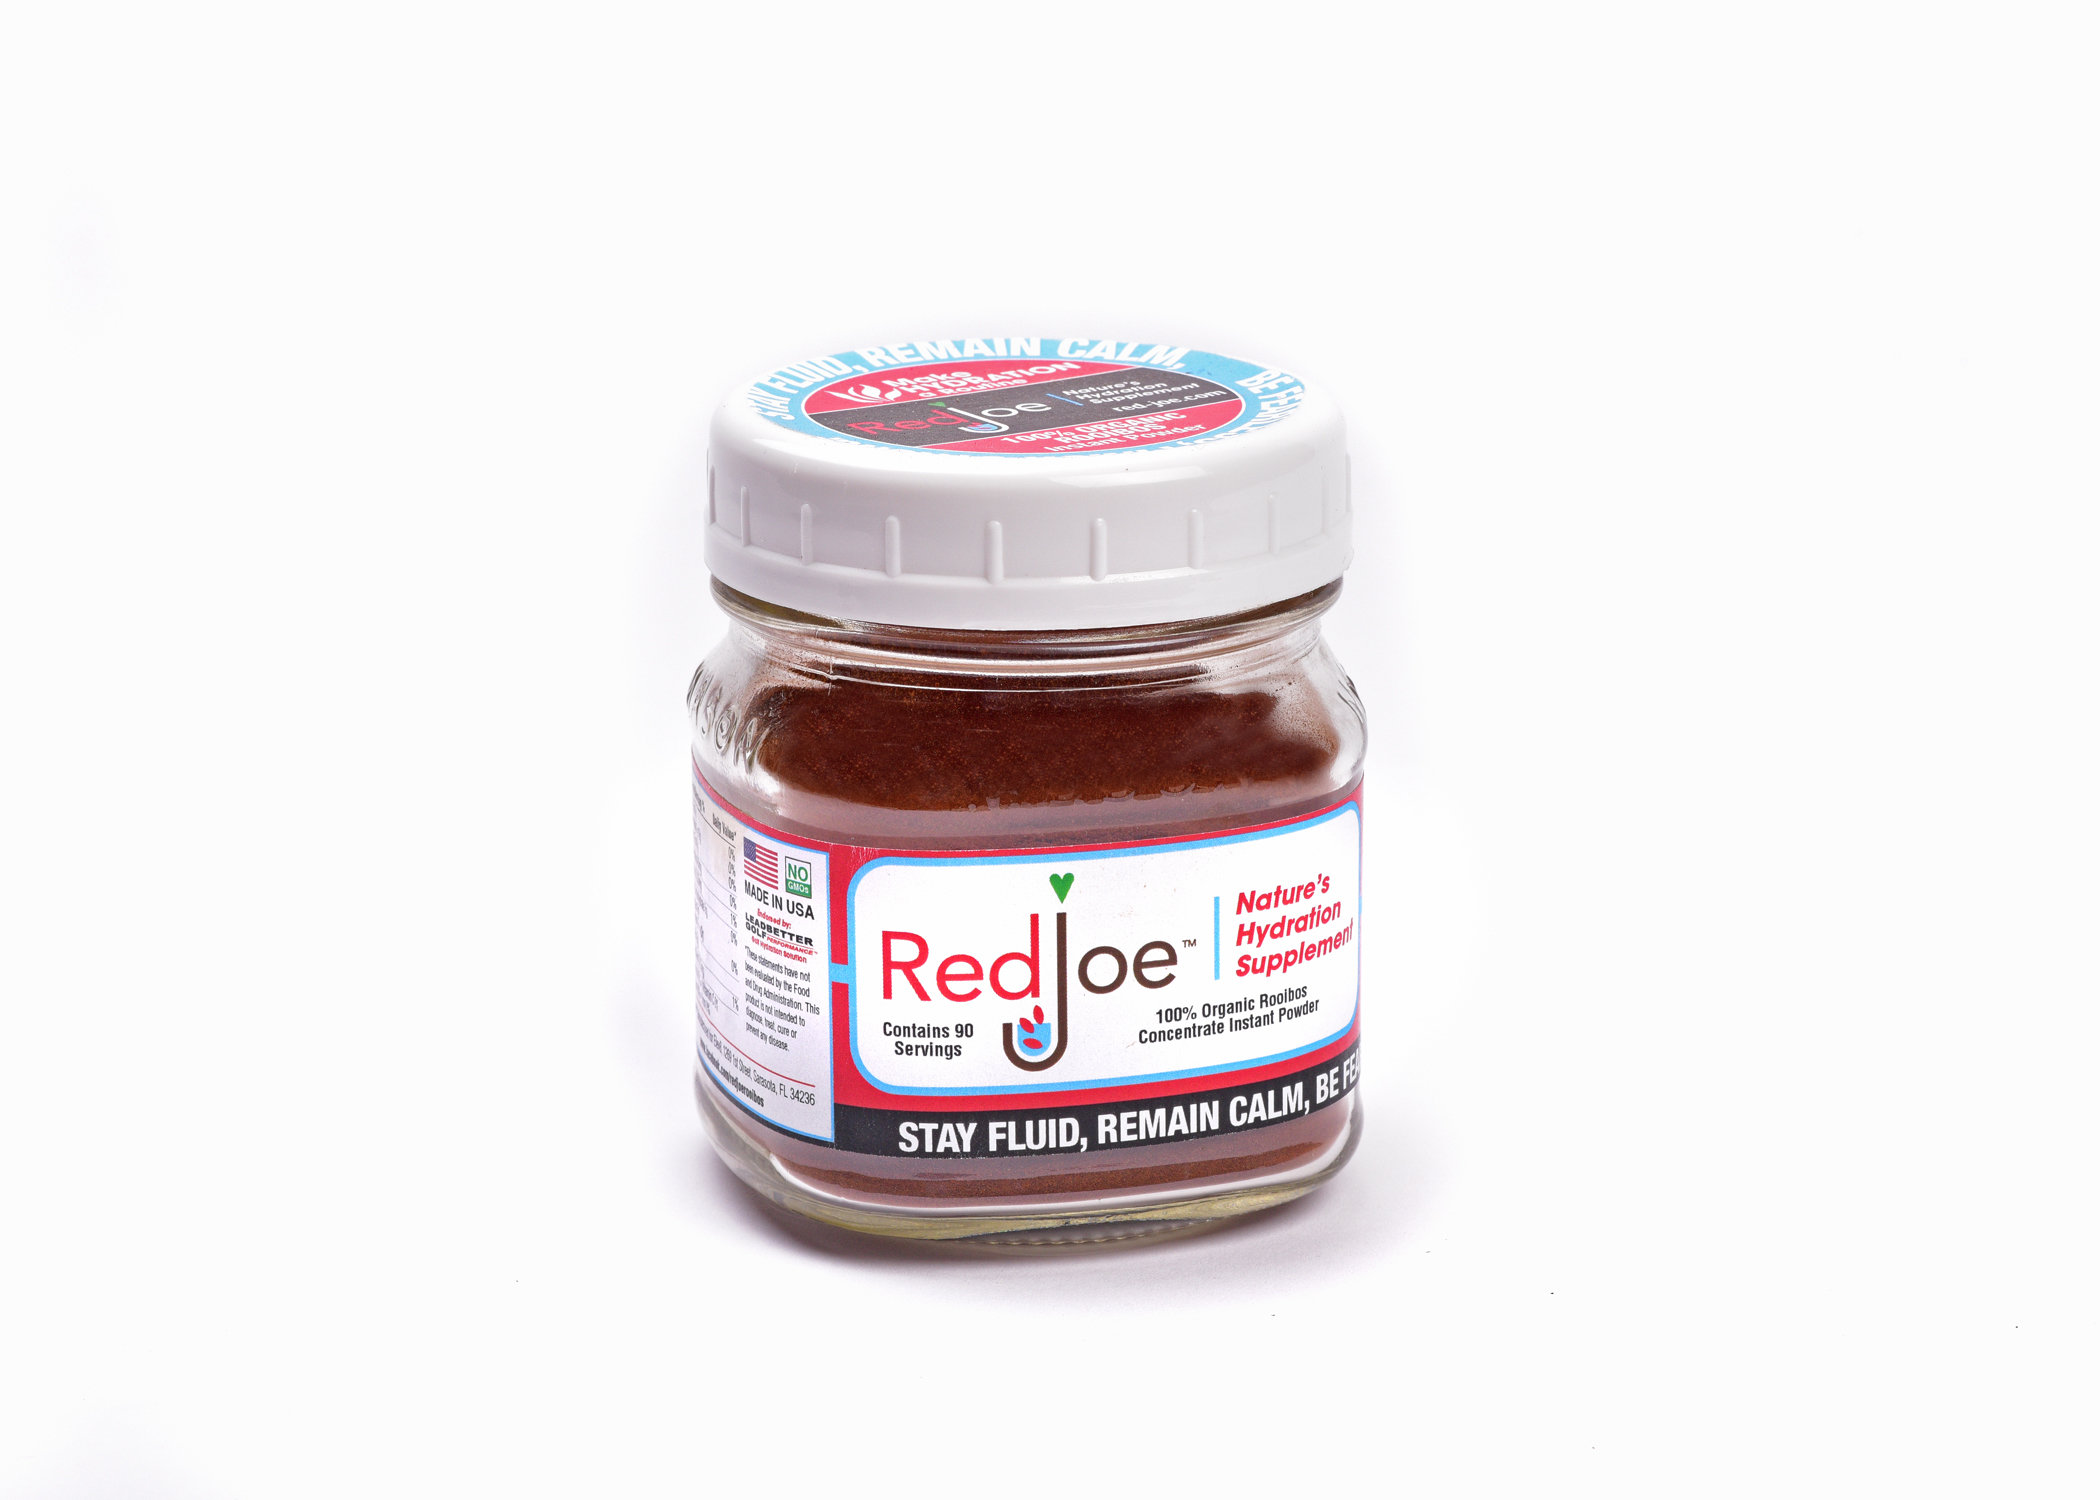 90 serving jar of RedJoe Powder 859096004030